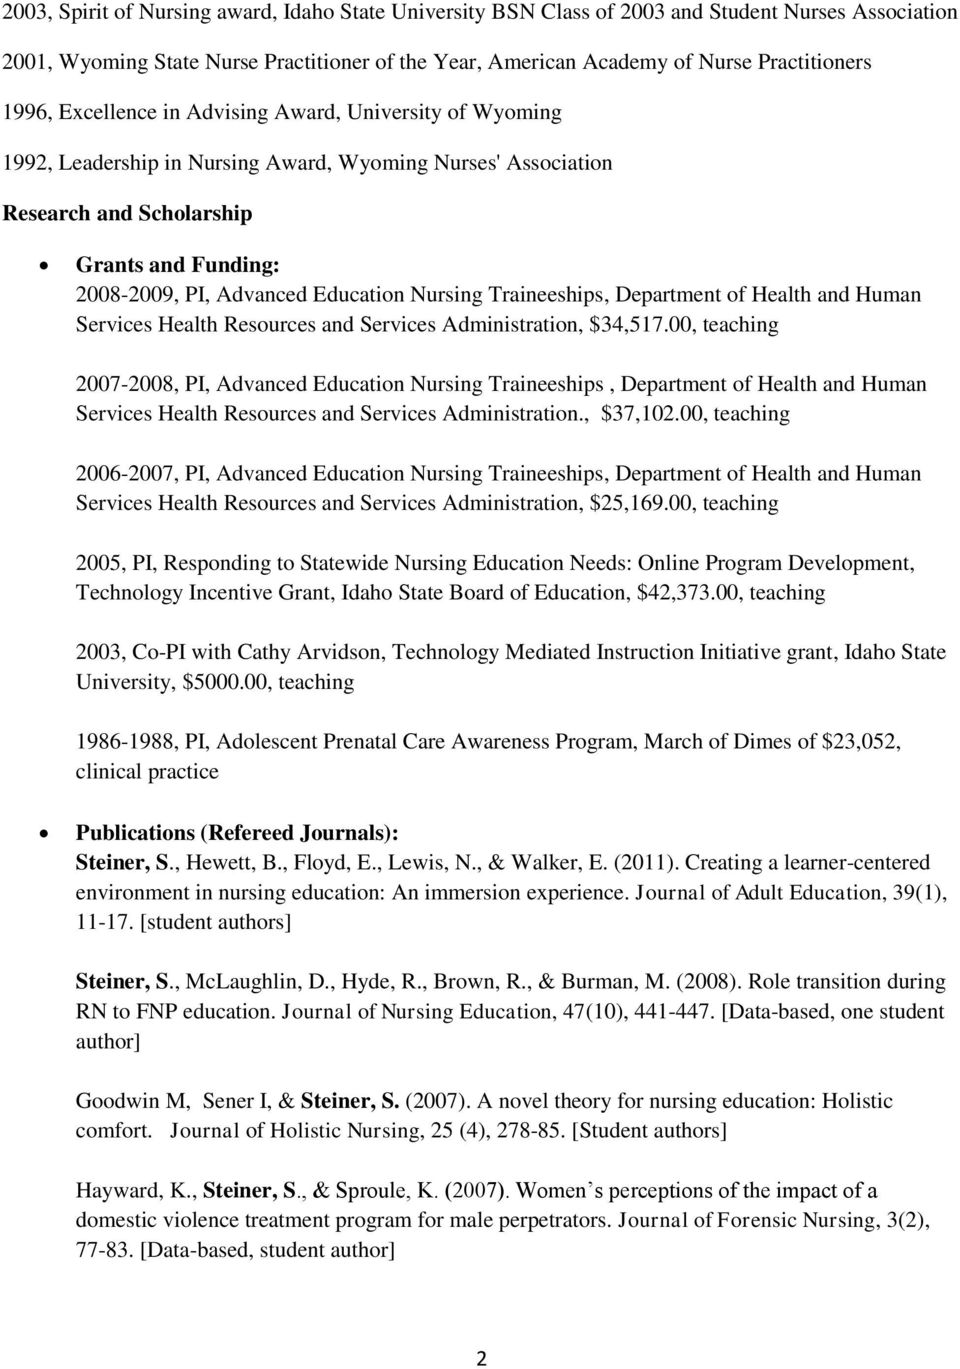 Nursing Traineeships, Department of Health and Human Services Health Resources and Services Administration, $4,517.